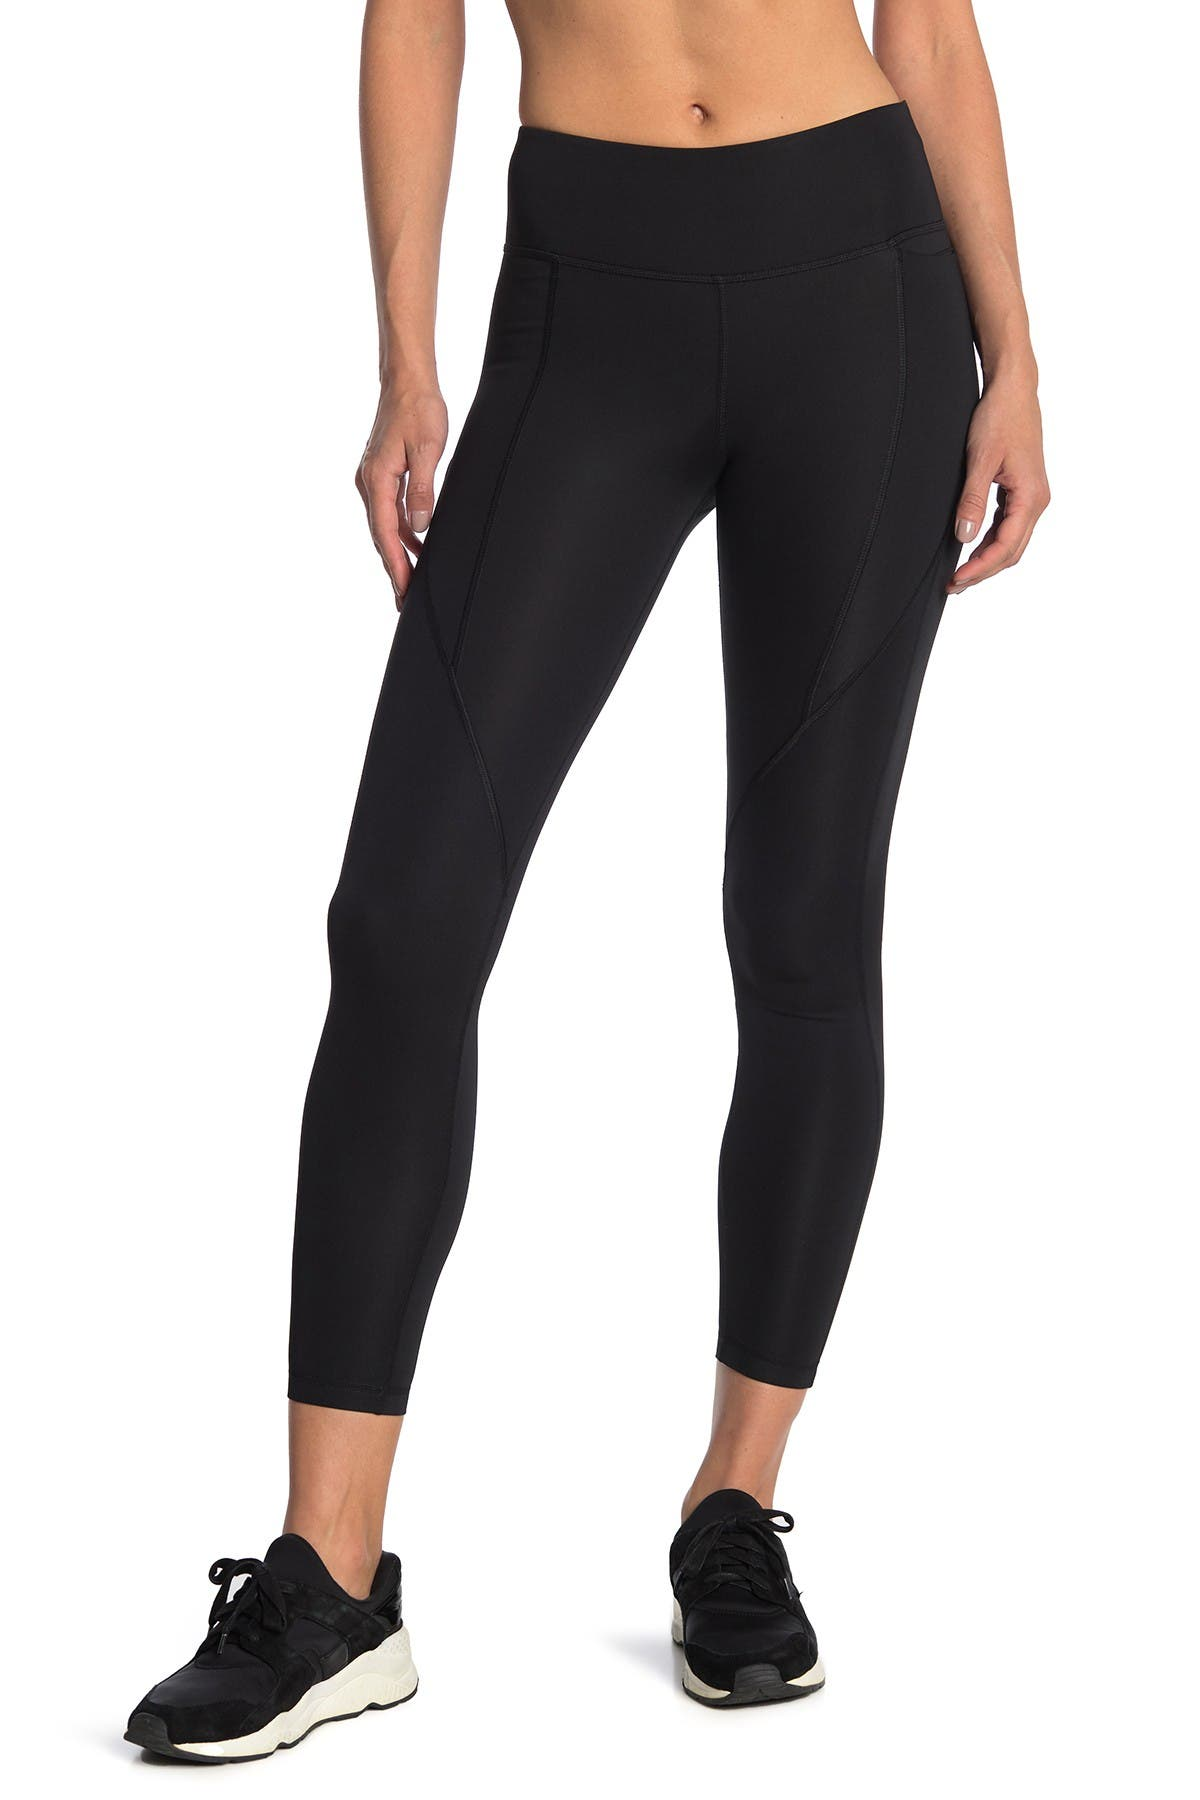 Image of Reebok Workout Ready Performance Tight